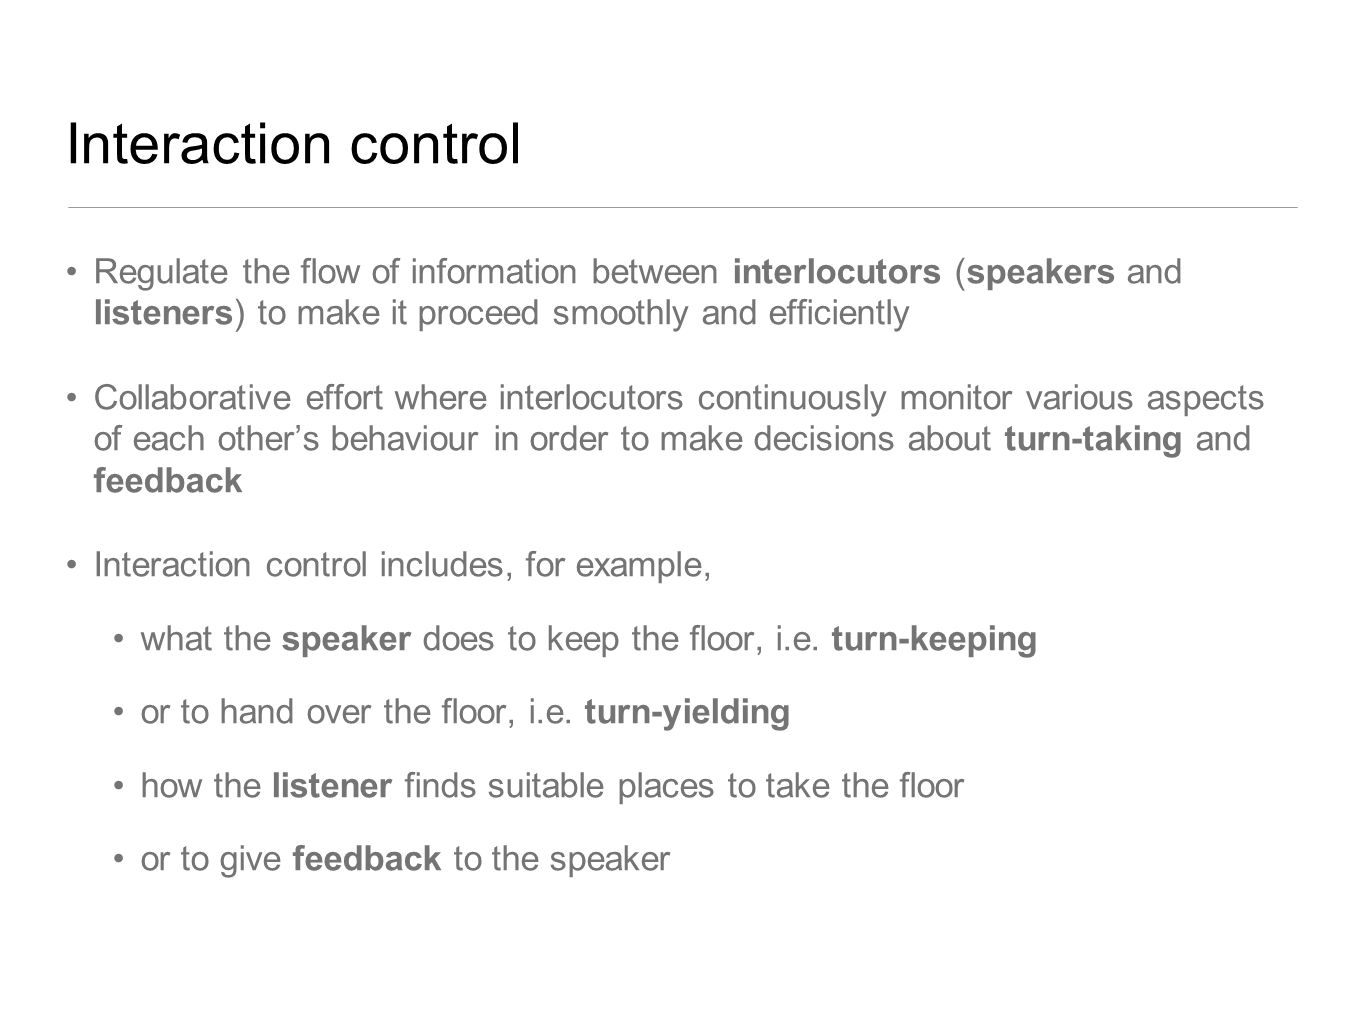 Interaction control Regulate the flow of information between interlocutors (speakers and listeners) to make it proceed smoothly and efficiently Collaborative effort where interlocutors continuously monitor various aspects of each other's behaviour in order to make decisions about turn-taking and feedback Interaction control includes, for example, what the speaker does to keep the floor, i.e.